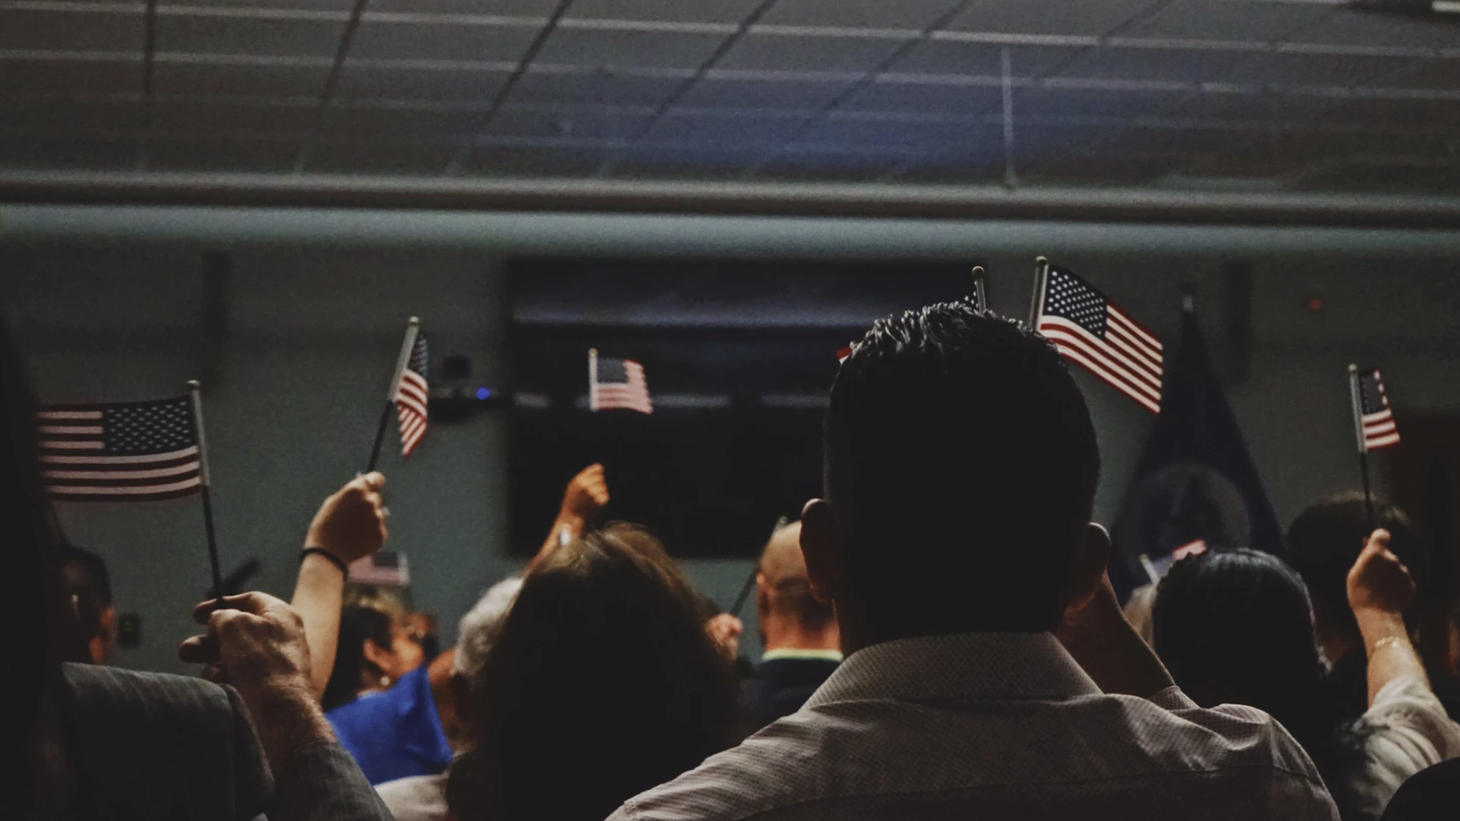 Marisol Alarcon warns undocumented immigrants of the false promises that some immigrations consultants might offer under the guise of being lawyers.